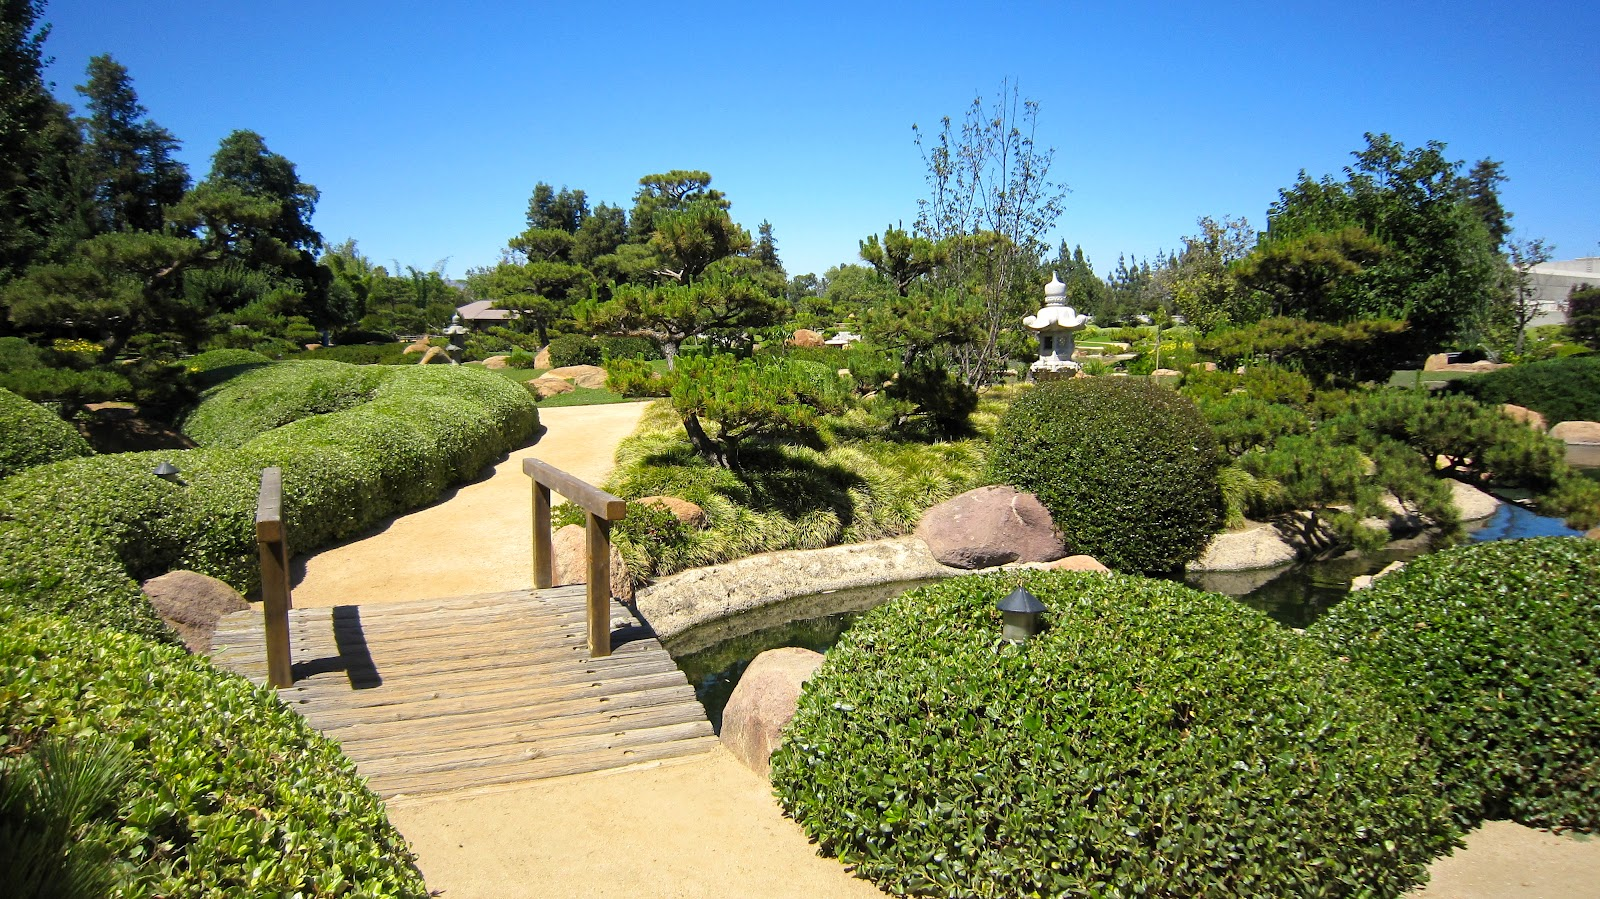 A Minute In The Life Of Maria Experience Explore The Japanese Gardens Van Nuys California